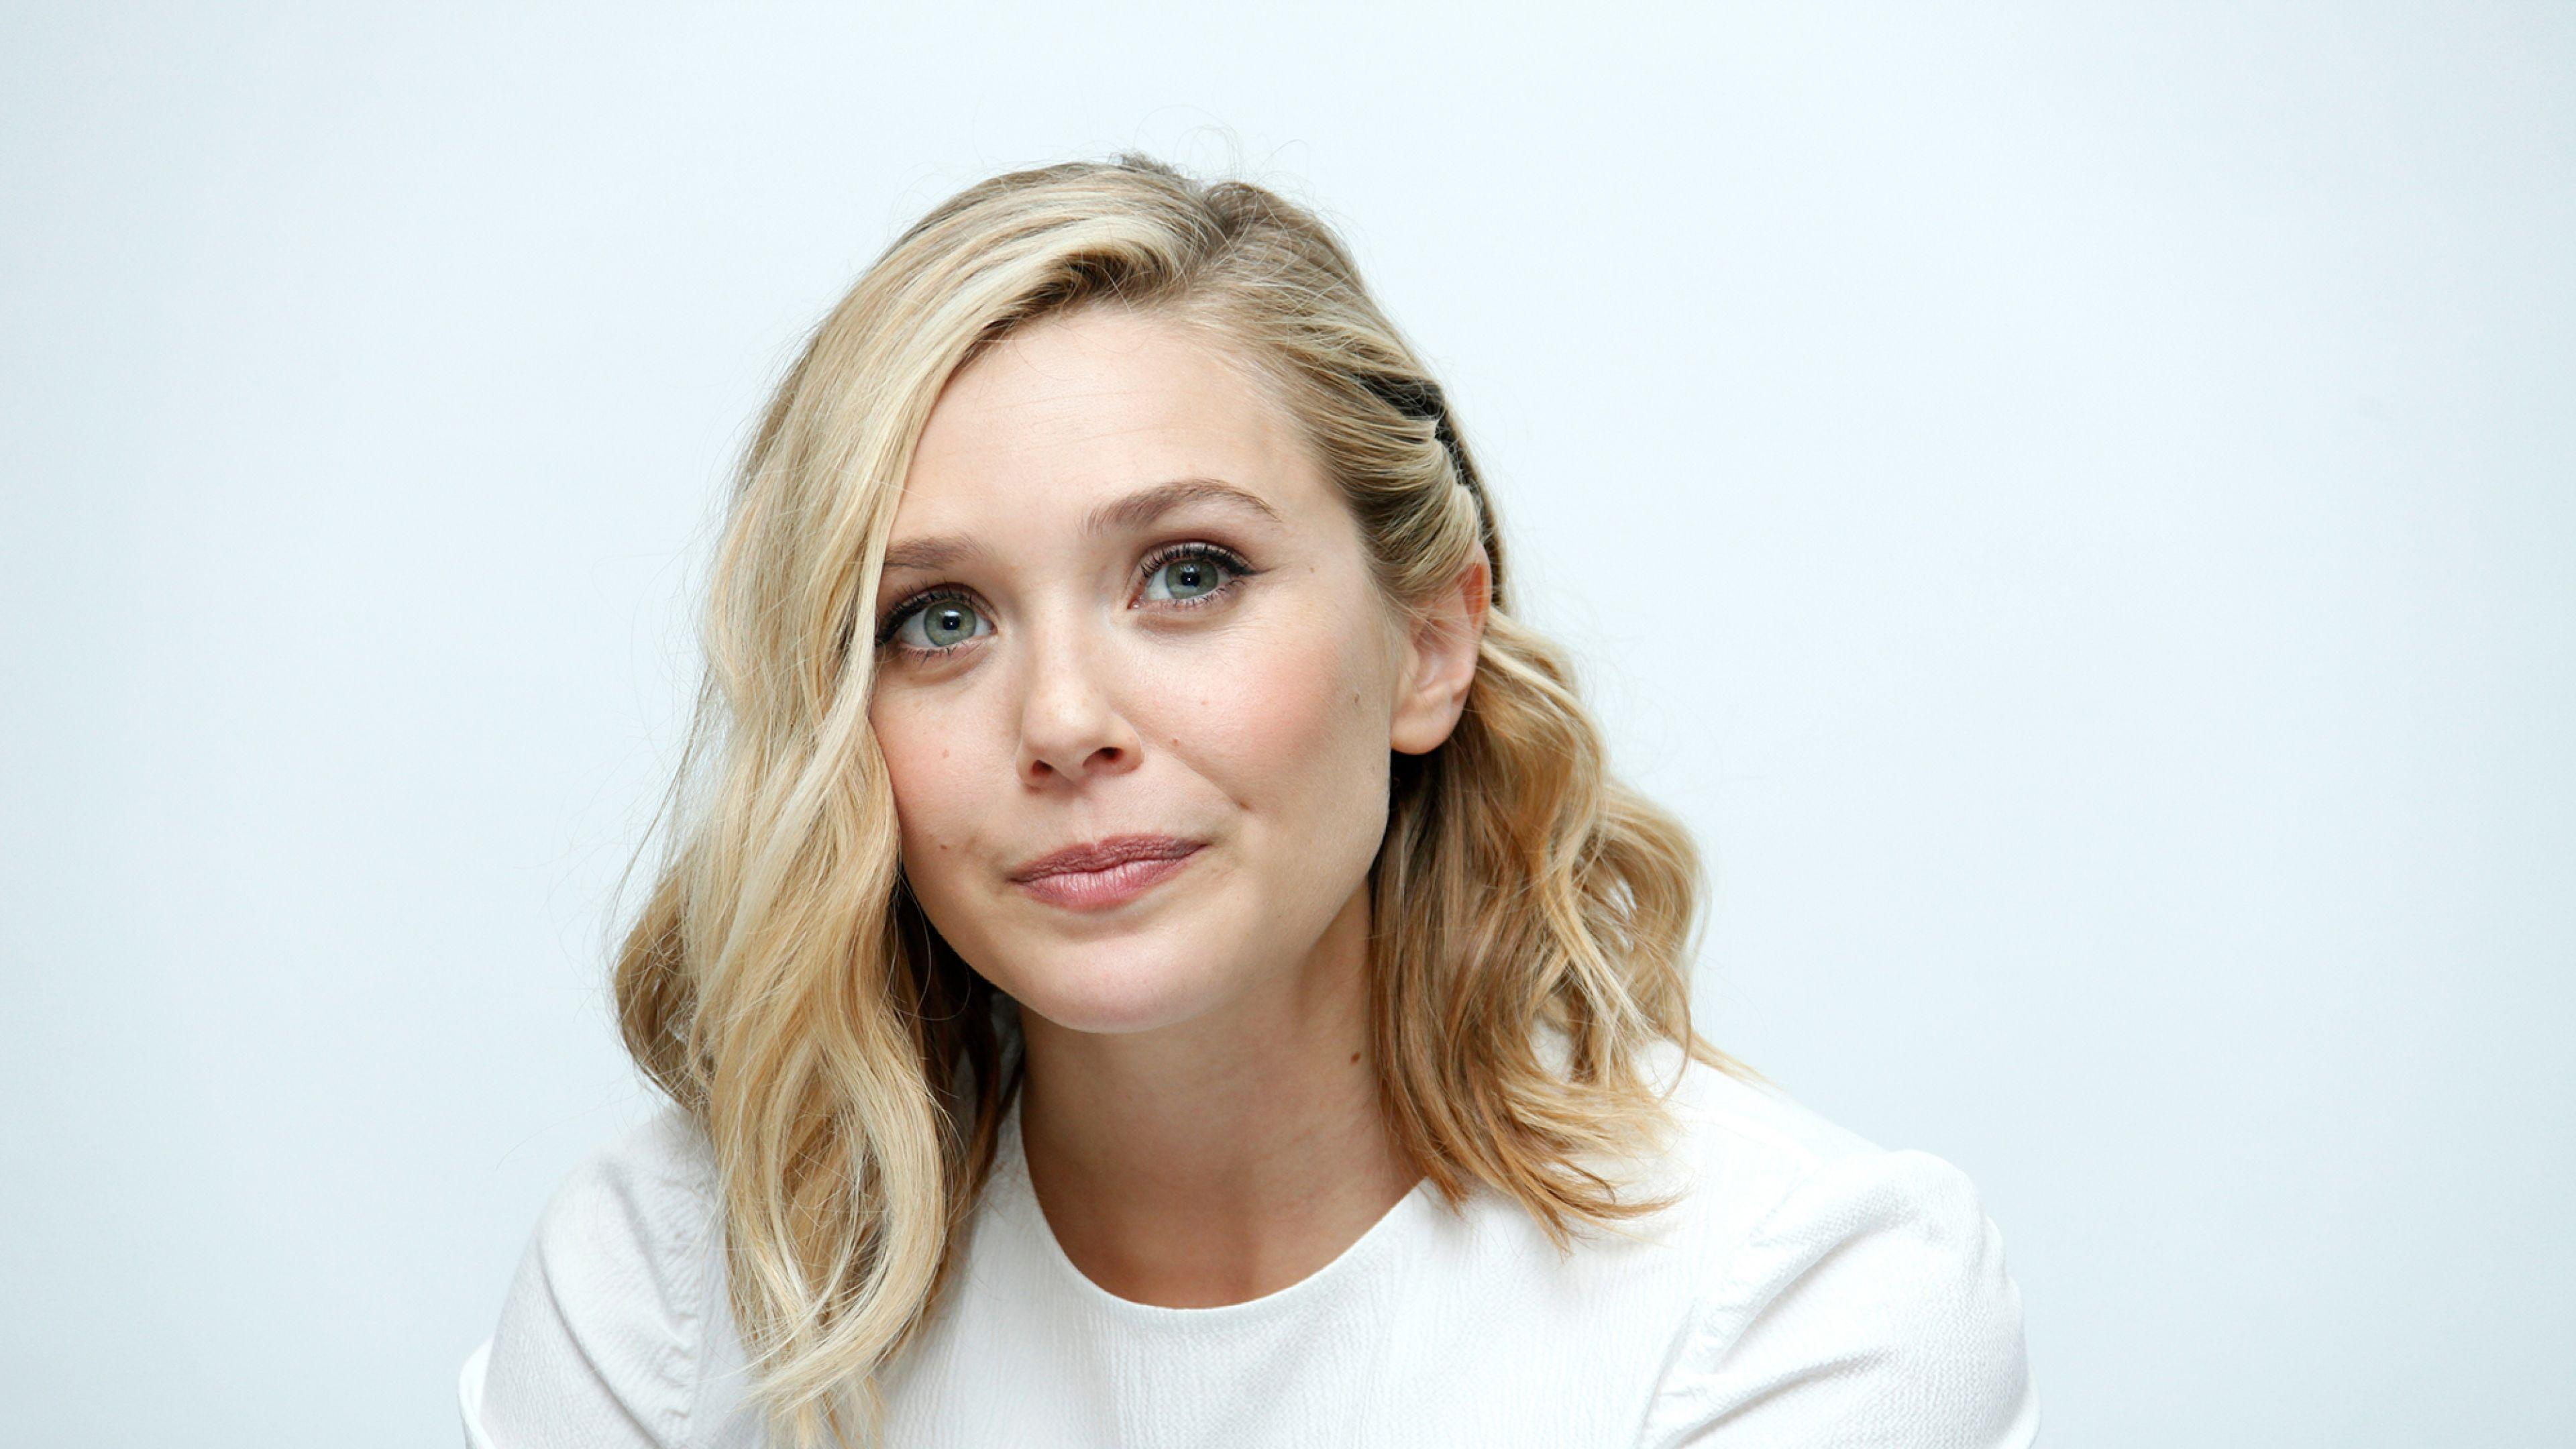 Elizabeth Olsen Wallpapers 3840x2160